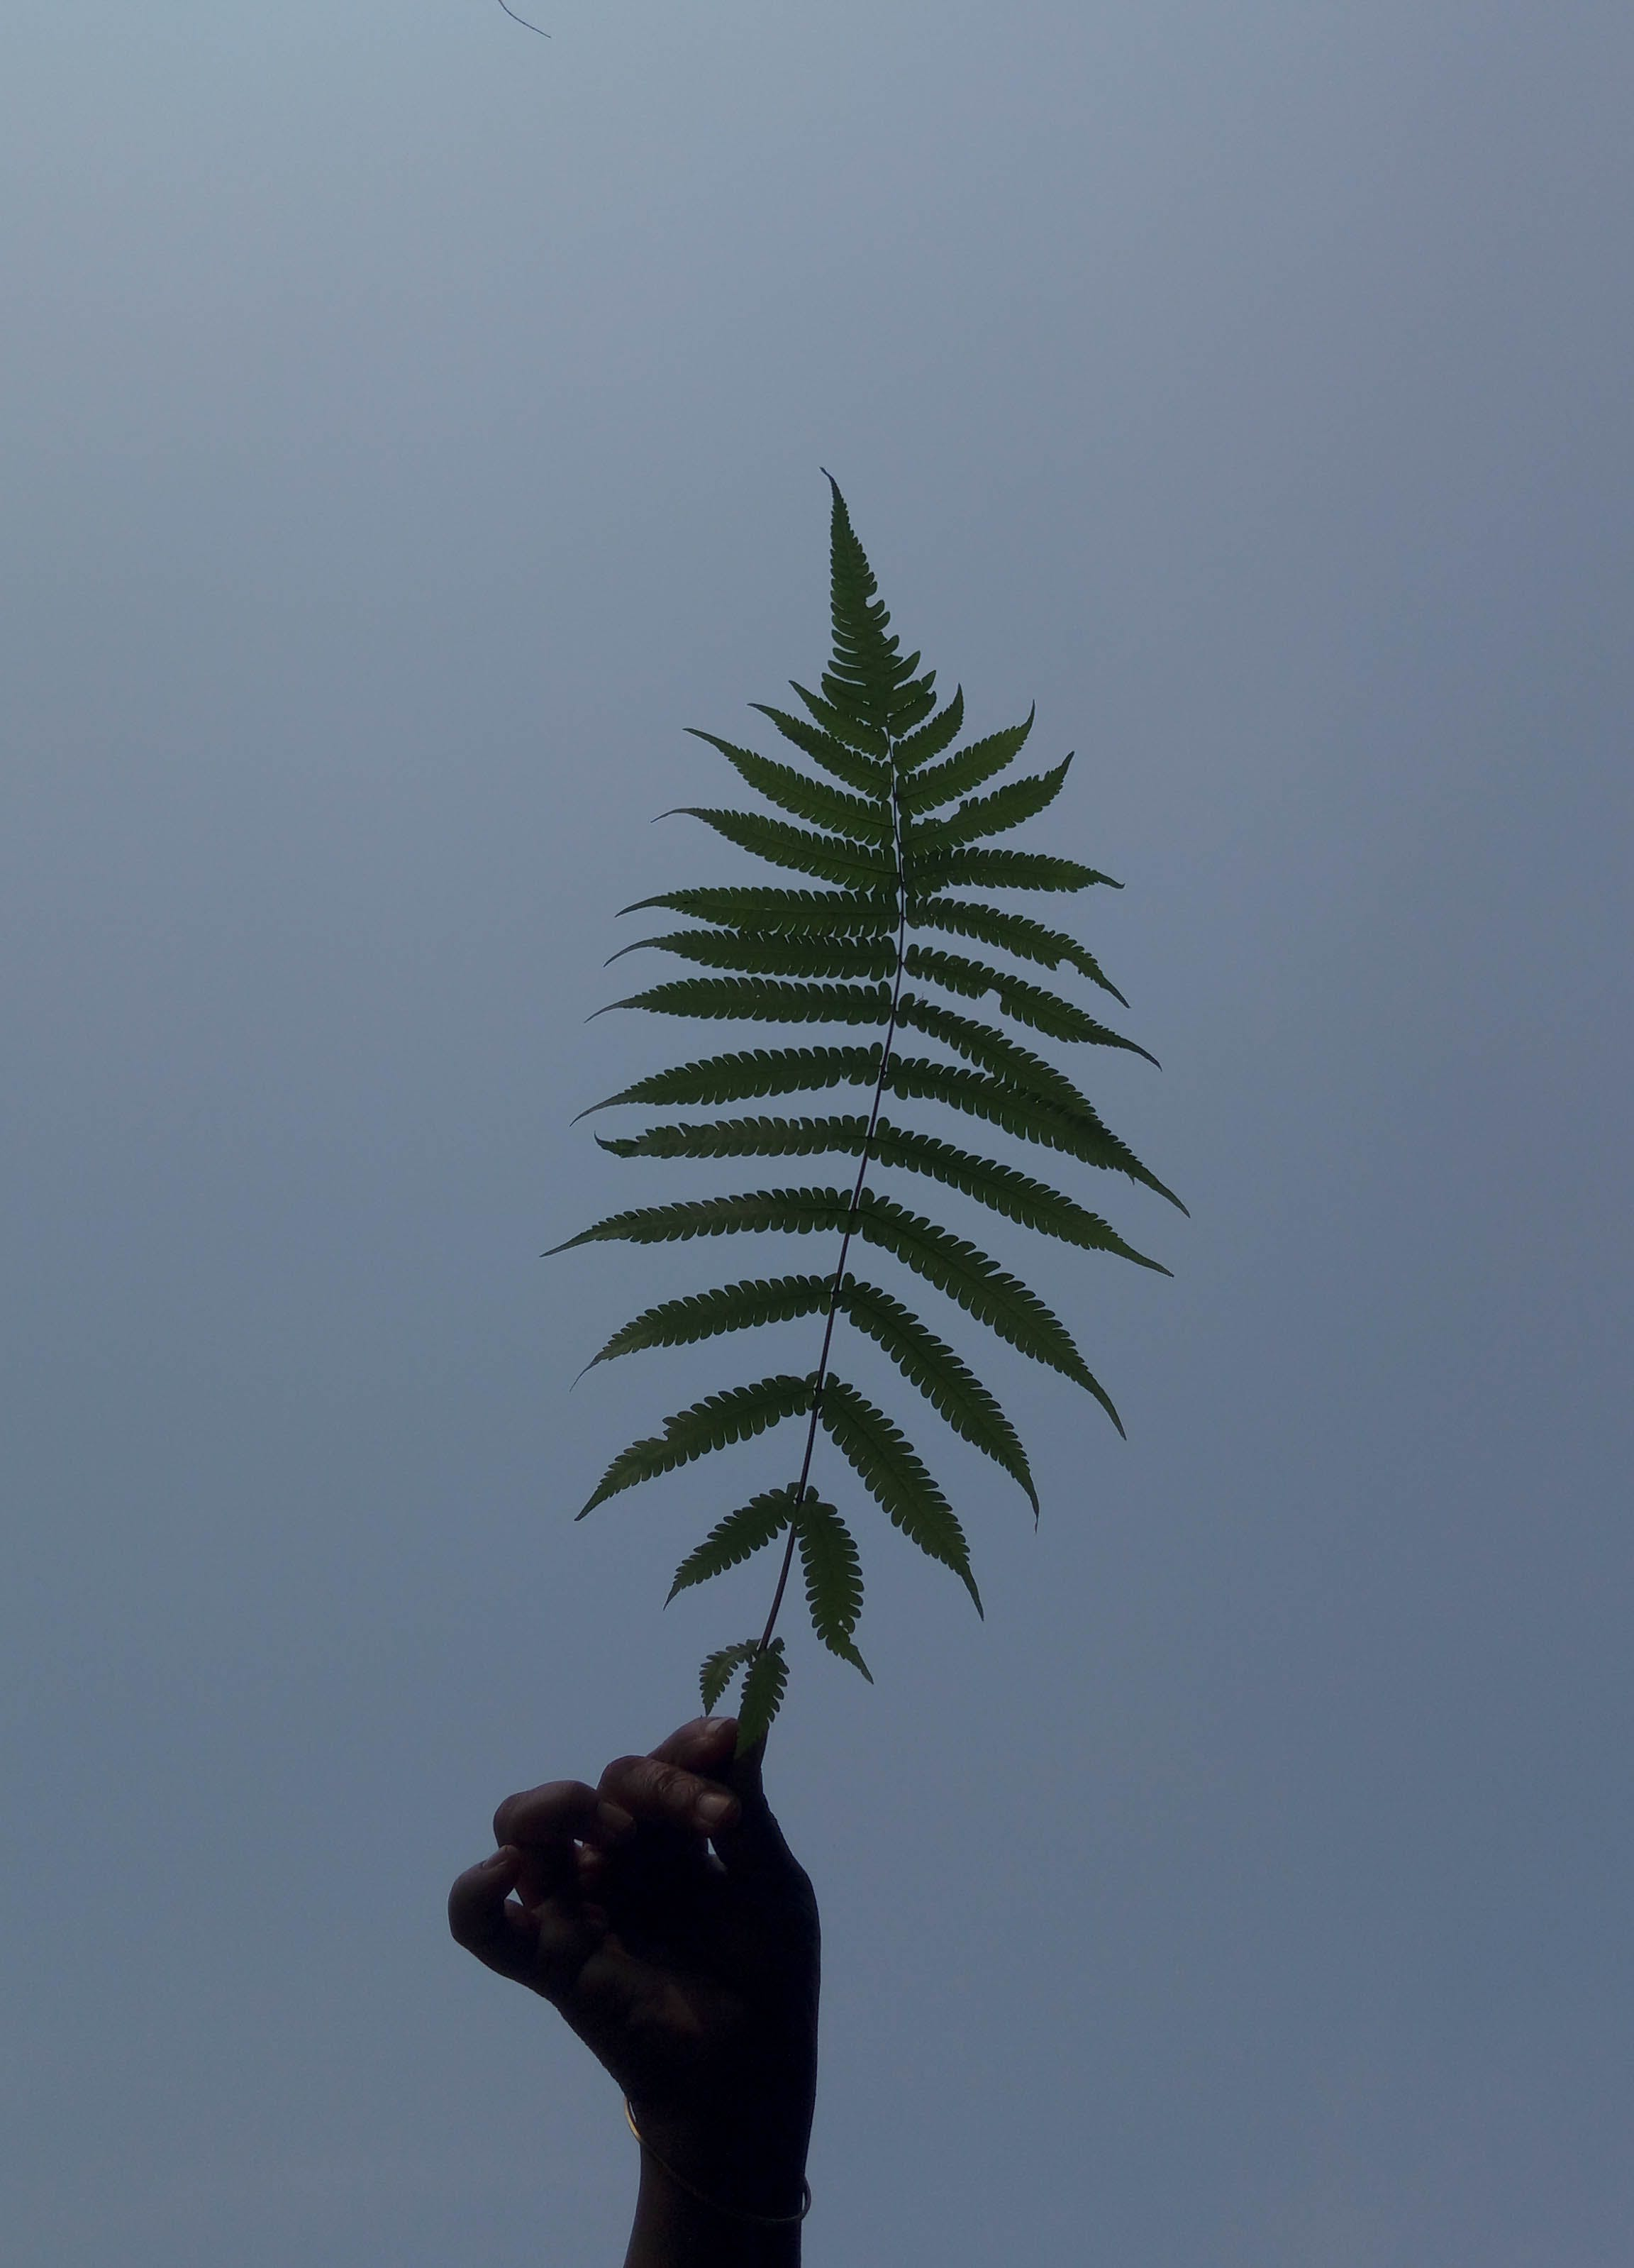 Person's Hand Holding Green Leaf Fern